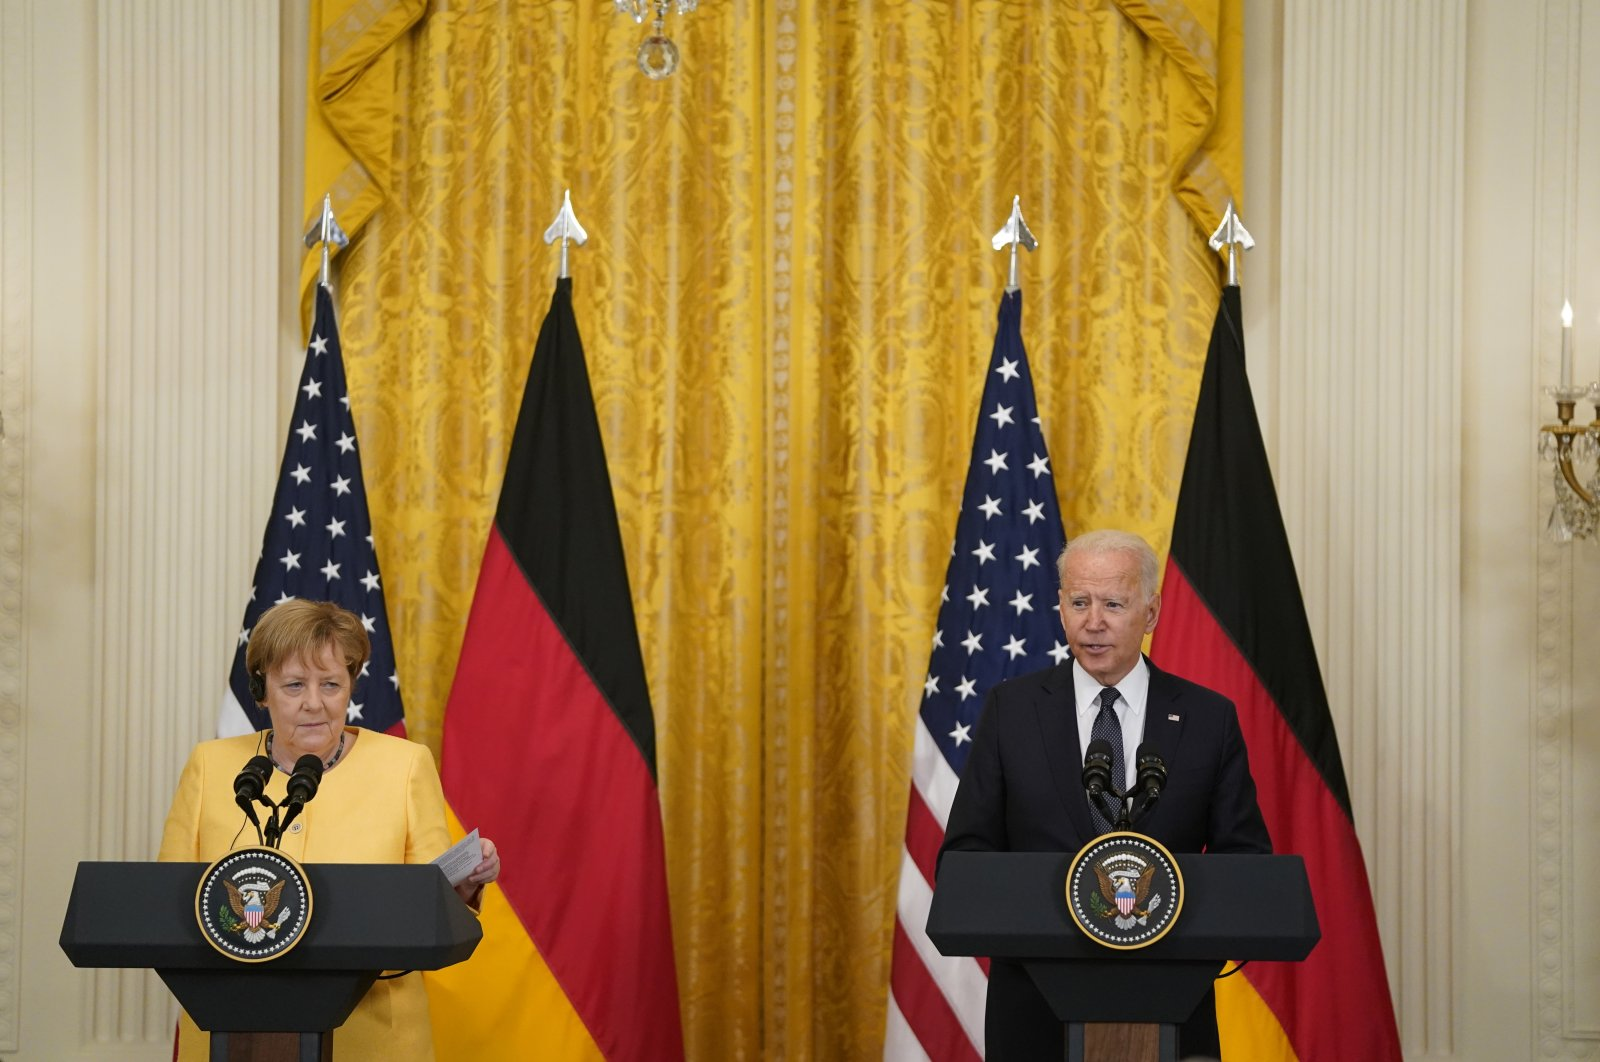 U.S. President Joe Biden (R) holds a joint press conference with German Chancellor Angela Merkel (L) in the East Room of the White House in Washington, D.C., July, 15, 2021.  (EPA/Alex Edelman / POOL)